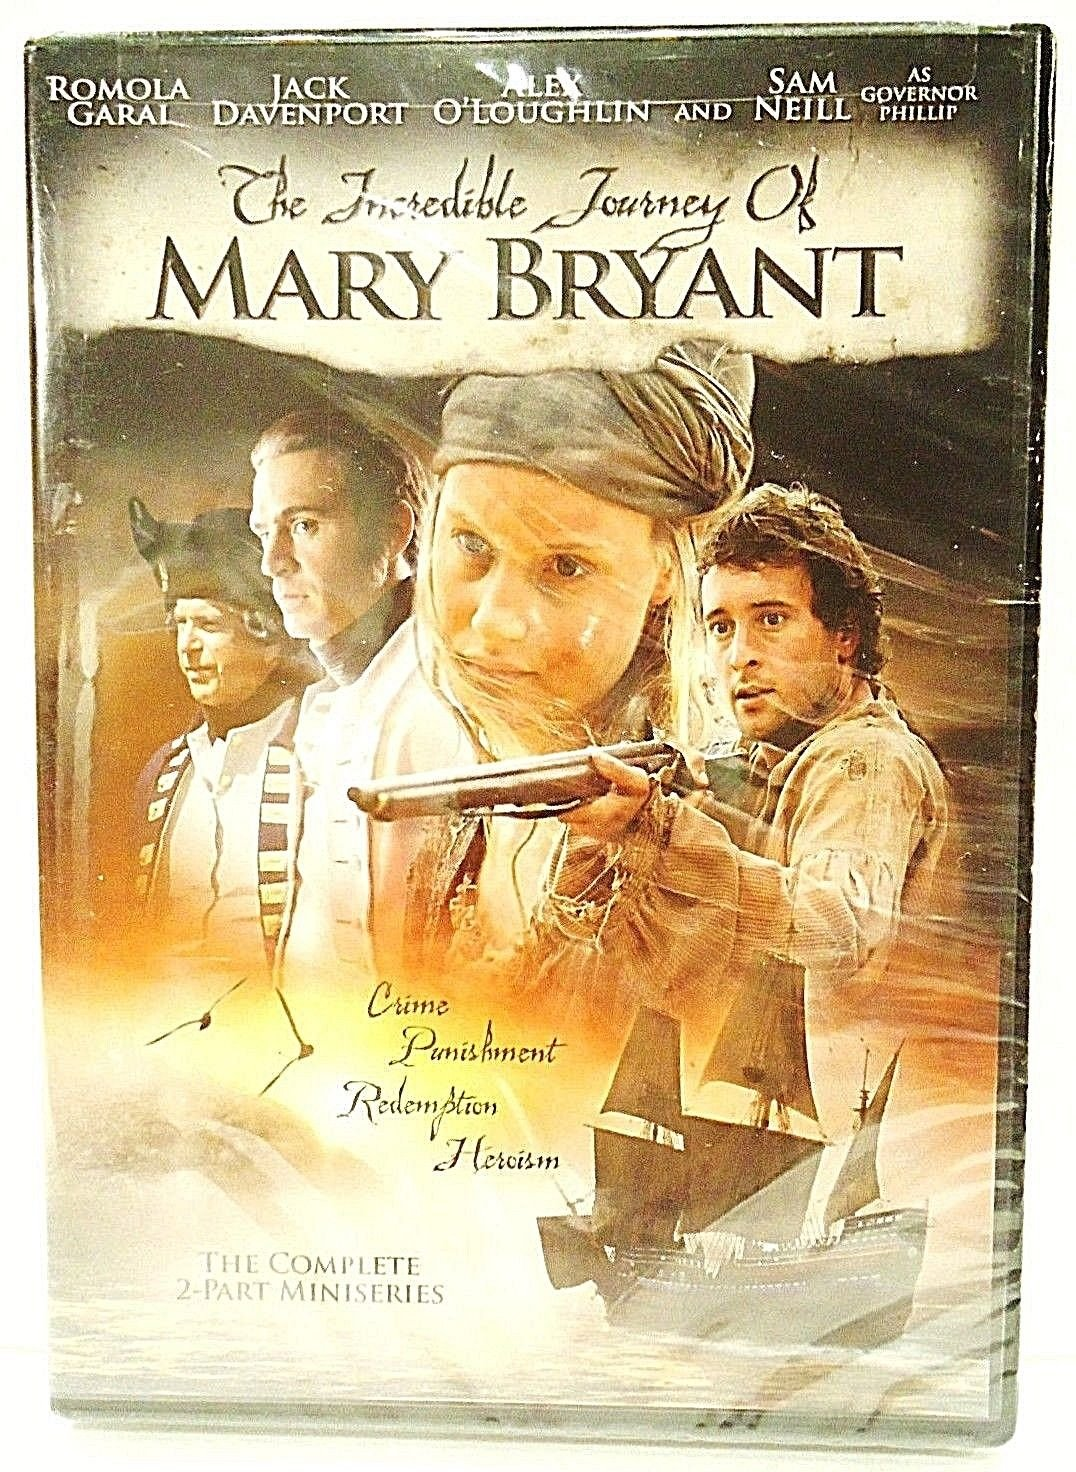 THE INCREDIBLE JOURNEY OF MARY BRYANT - NEW - DVD - SAM NEIL - SEALED - PIRATES